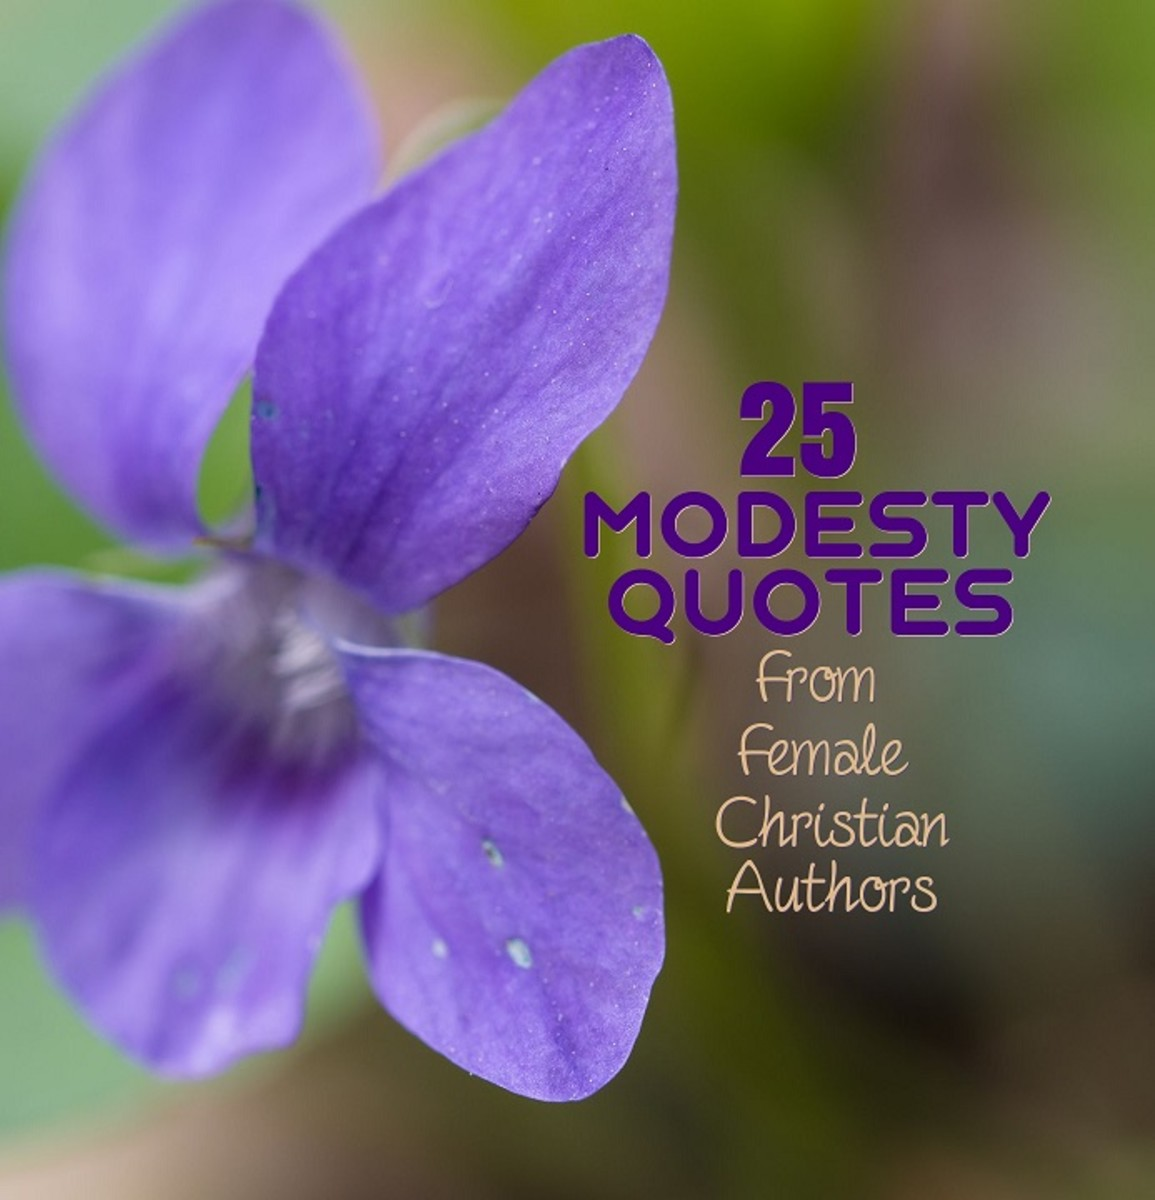 25 Modesty Quotes from Christian Female Authors